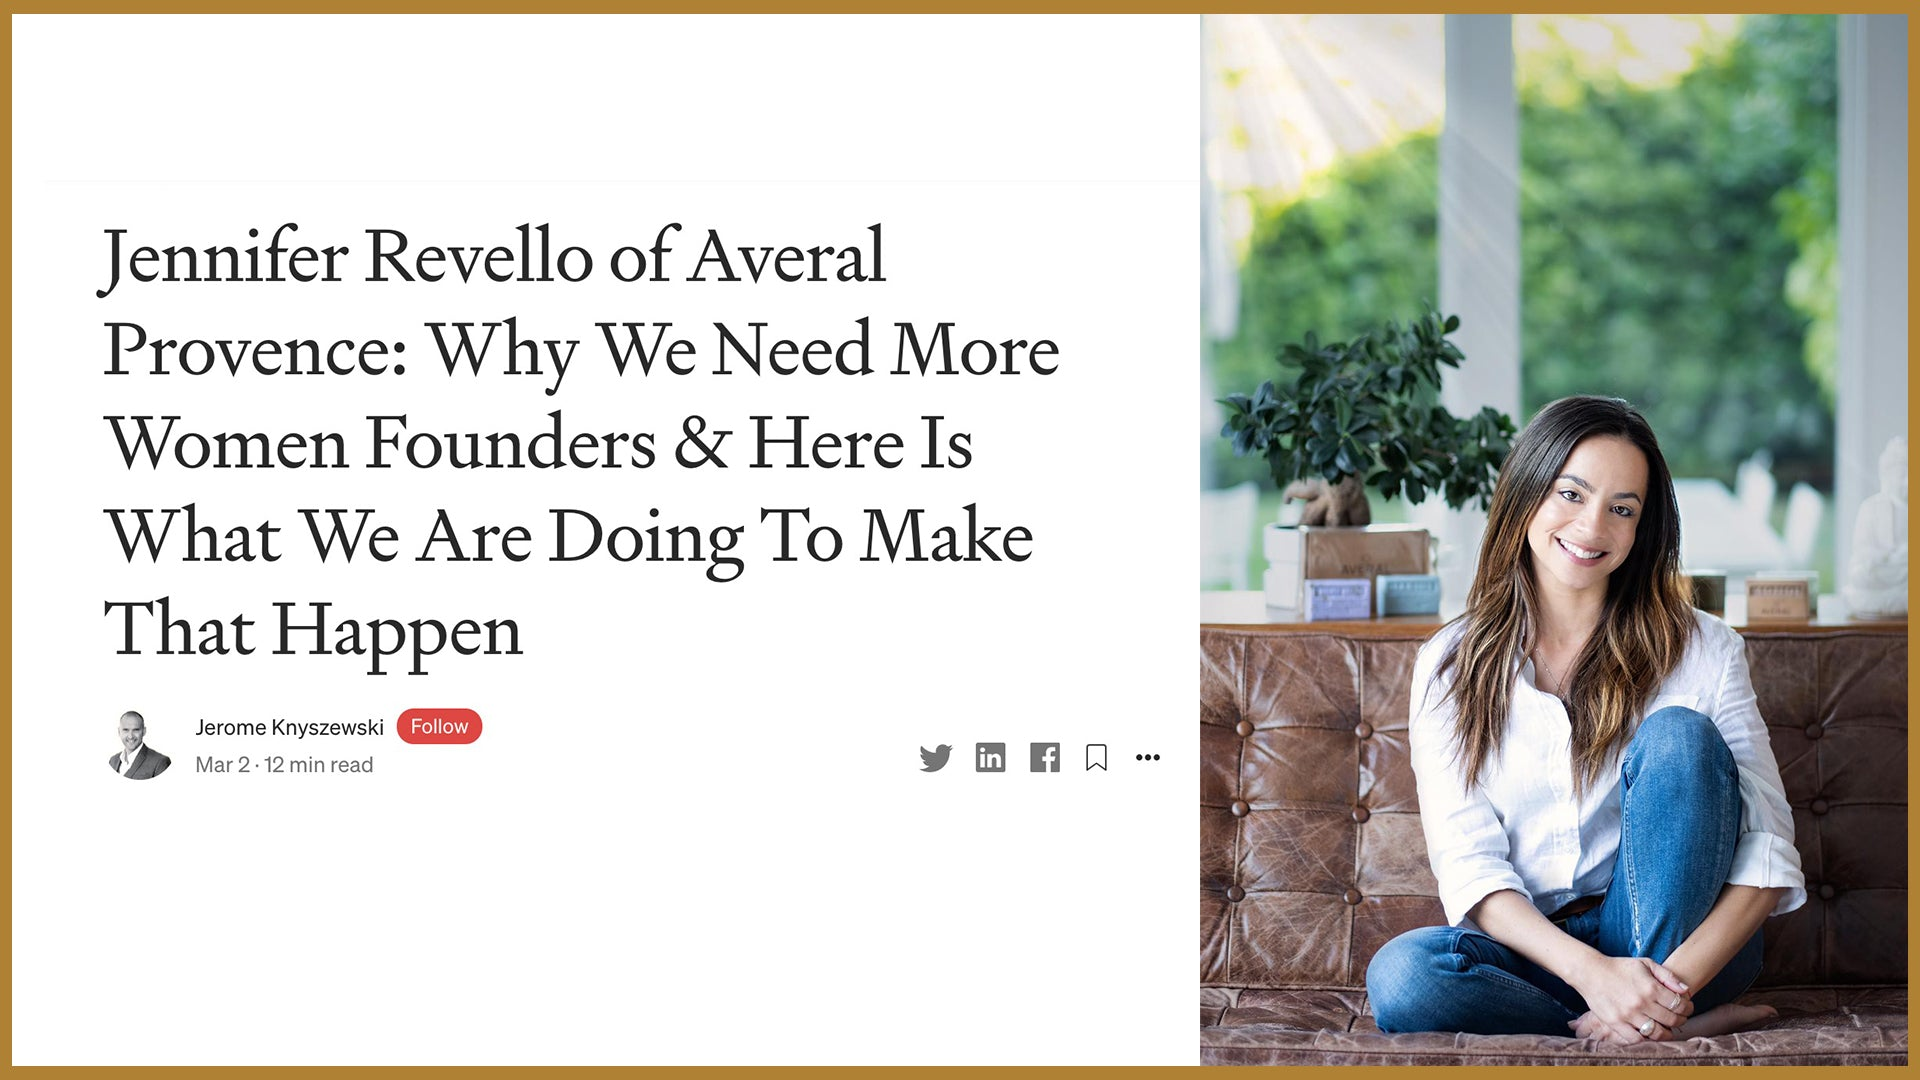 Jennifer Revello: woman in business, running a French Soaps company in the US Market, from Provence (France) to the United States